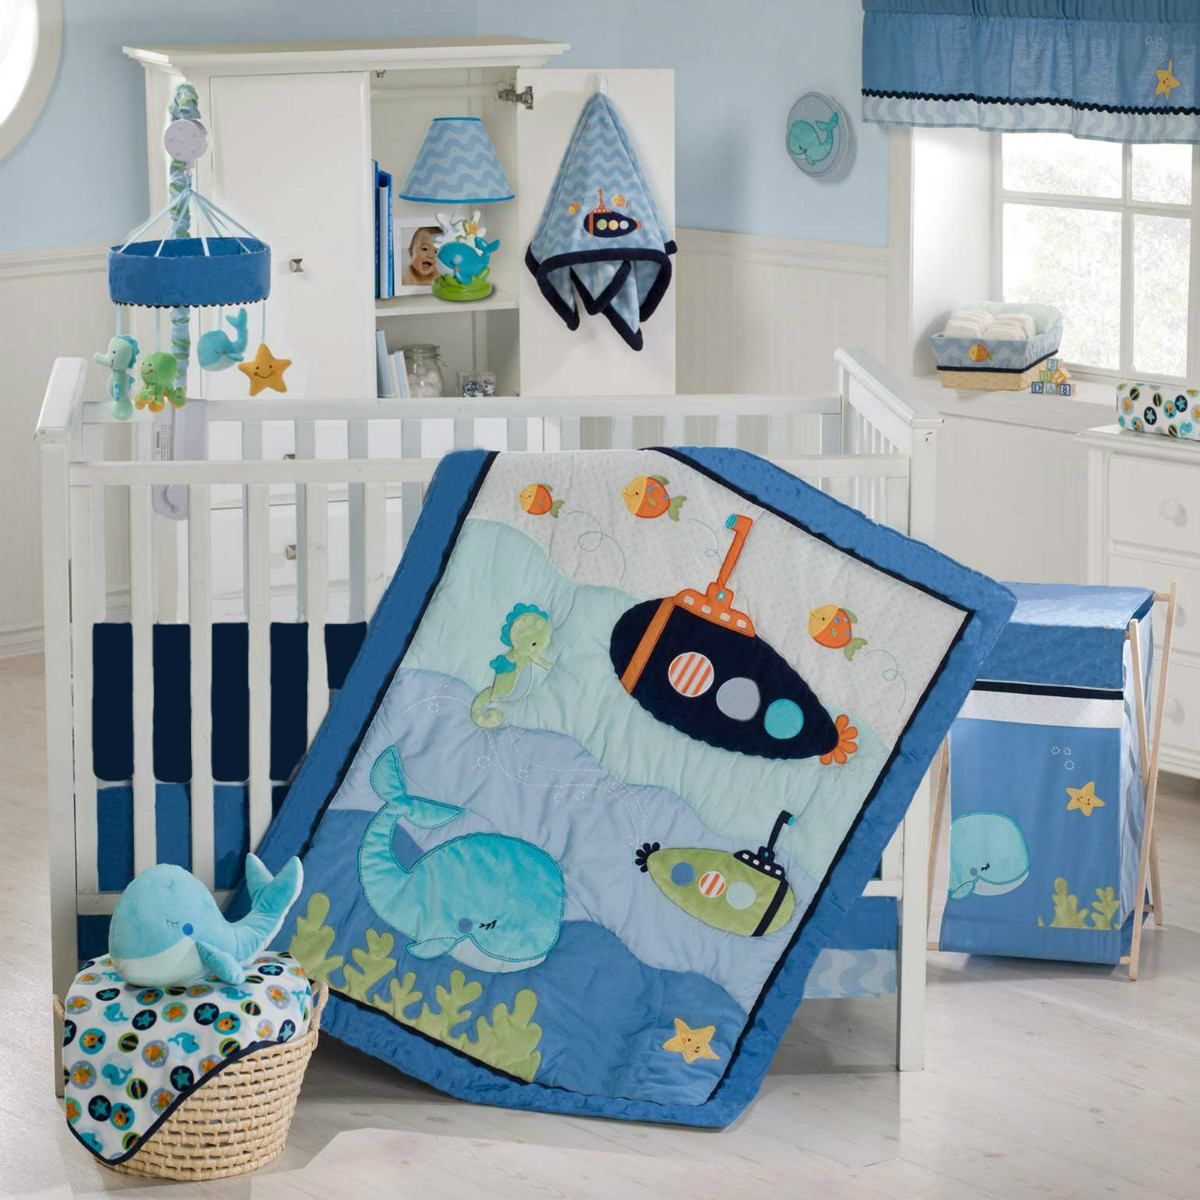 Nemo s reef 4 piece crib bedding set disney baby - Find This Pin And More On Proyectos Que Intentar By Damco74 Blue Lagoon 8 Piece Baby Crib Bedding Set